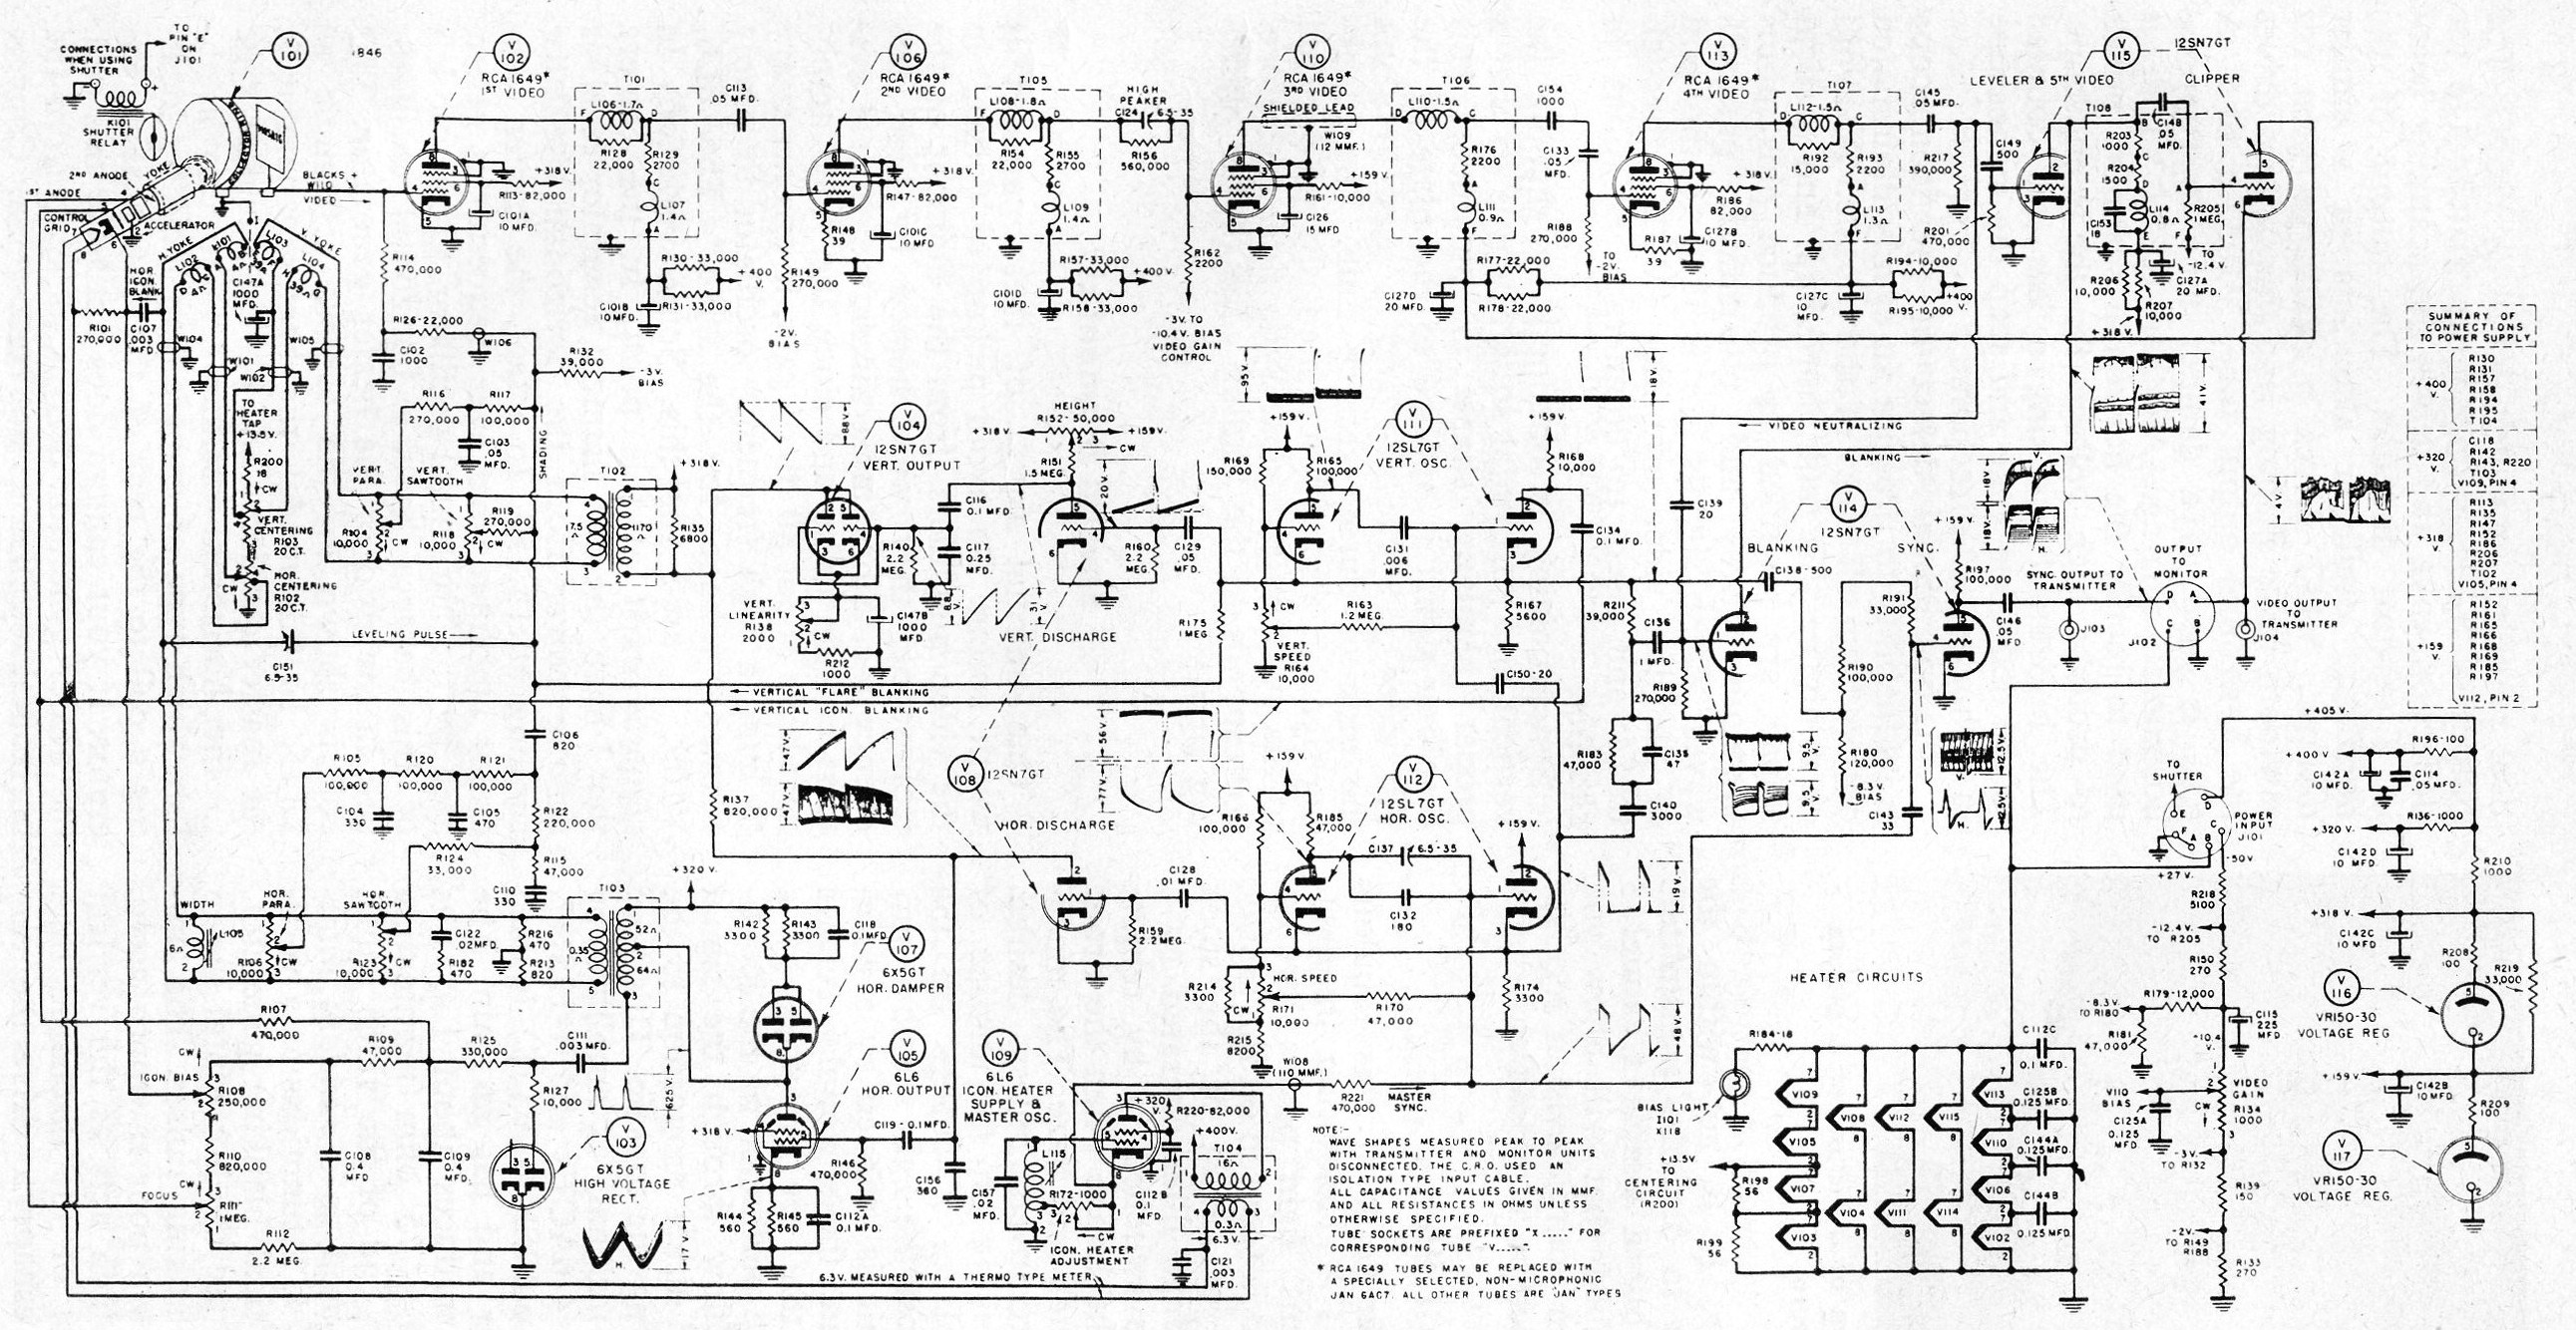 Genlock Wiring Diagram - Free Vehicle Wiring Diagrams • on pictorial diagram, exploded view diagram, circuit diagram, problem solving diagram, diagramming software, network diagram, yed graph diagram, isometric diagram, function block diagram, line diagram, schema diagram, system diagram, data flow diagram, tube map, straight-line diagram, ladder logic, carm diagram, cutaway diagram, electric current diagram, technical drawing, electronic design automation, schematic editor, piping and instrumentation diagram, wiring diagram, block diagram, one-line diagram, flow diagram, control flow diagram, sequence diagram, process diagram, critical mass diagram, cross section, functional flow block diagram, concept diagram,